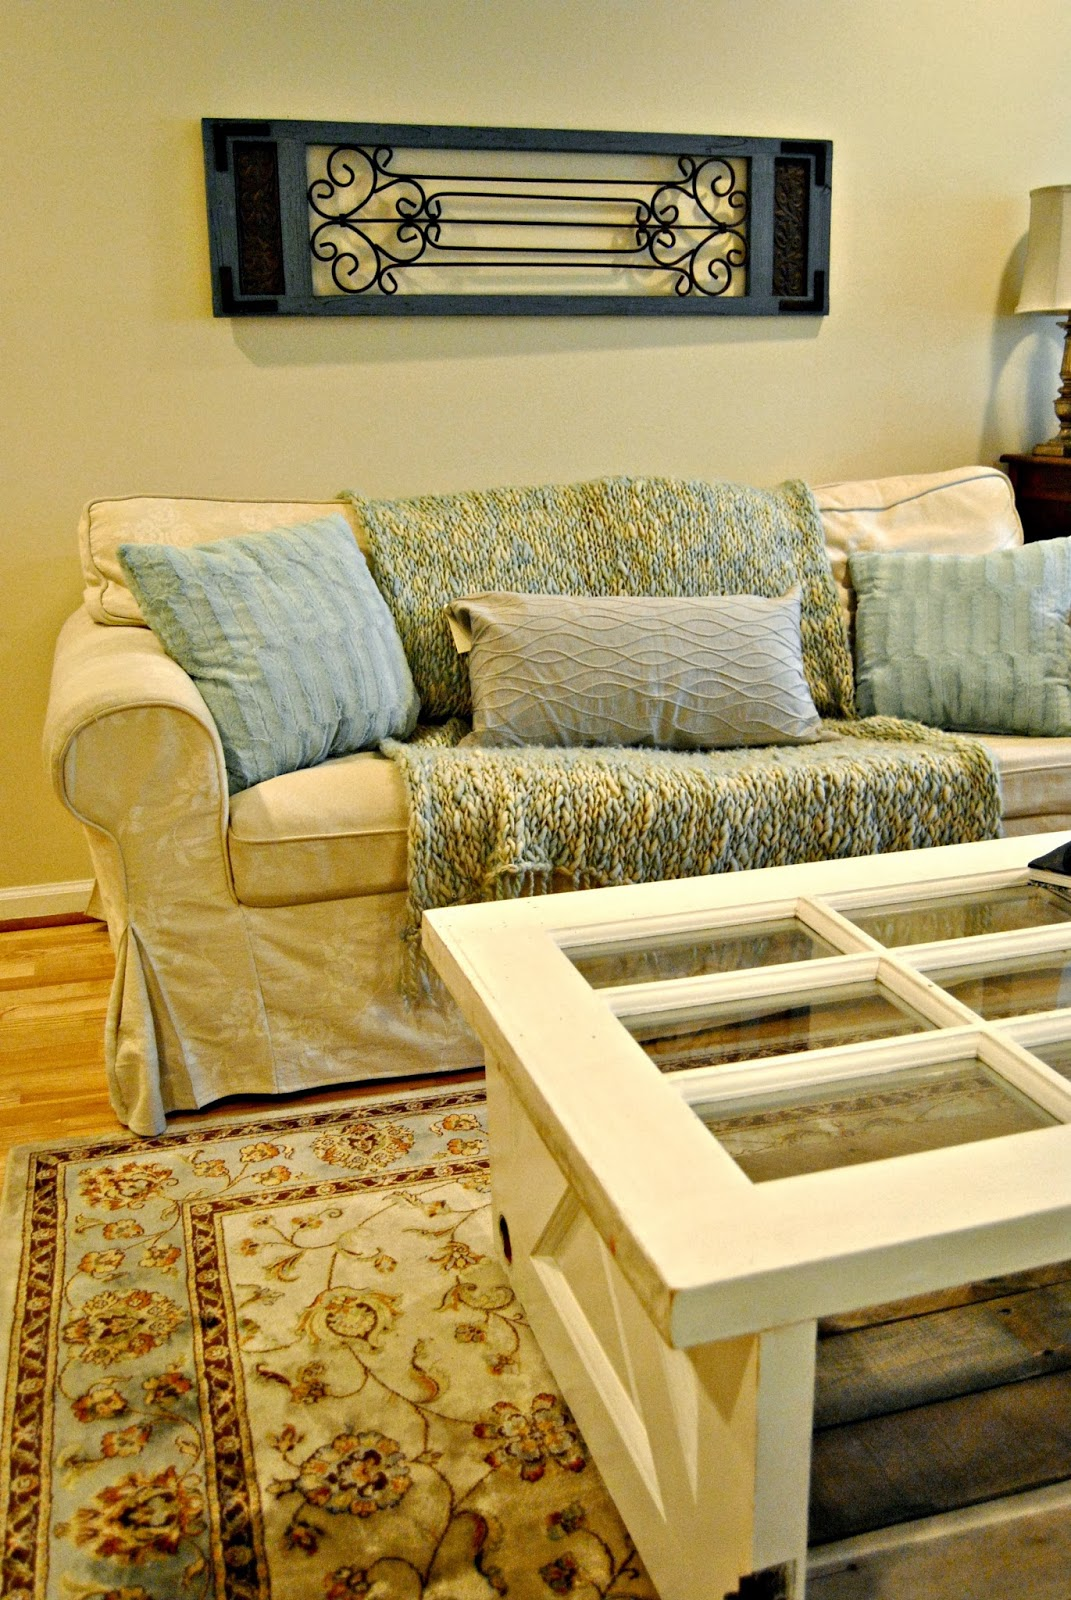 Vintage Door Coffee Table The Painted Home By Denise